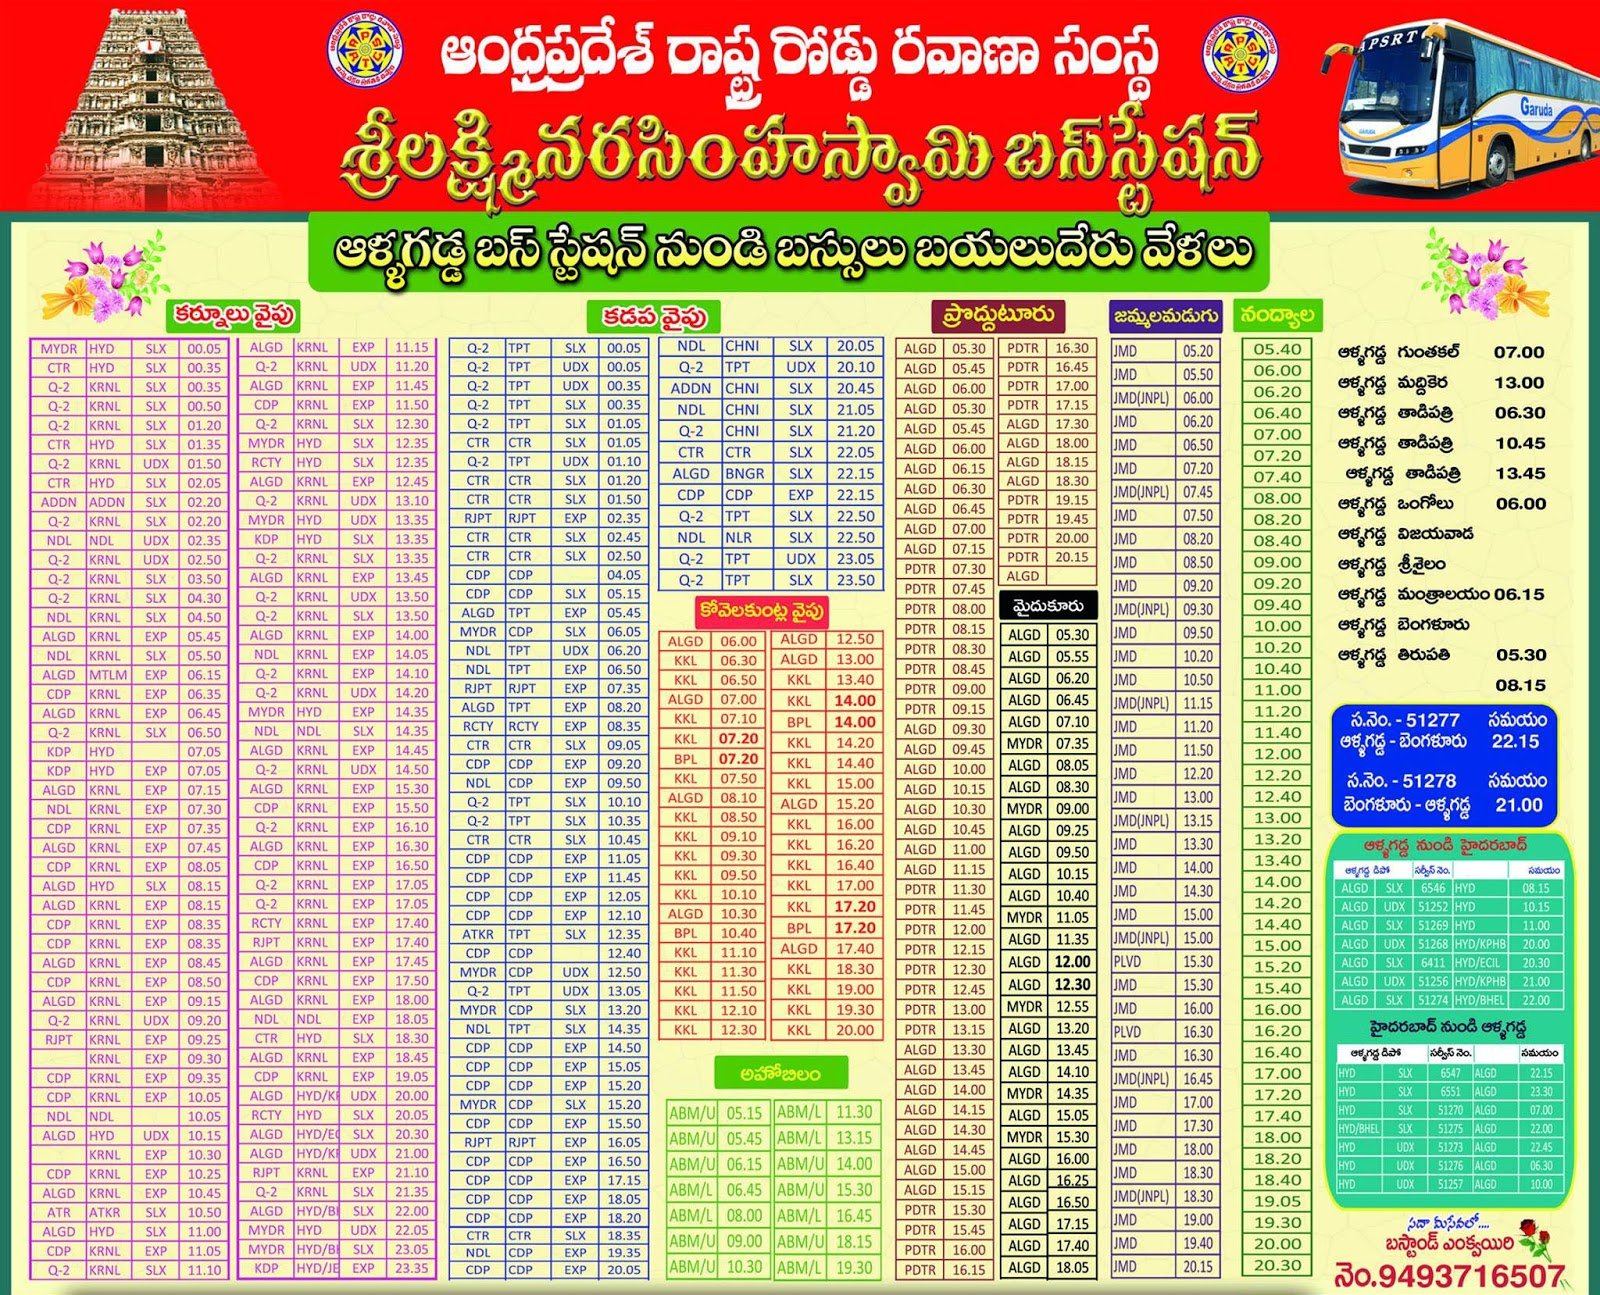 Table Showing Timings of the Buses that run from Allagadda to Several Cities